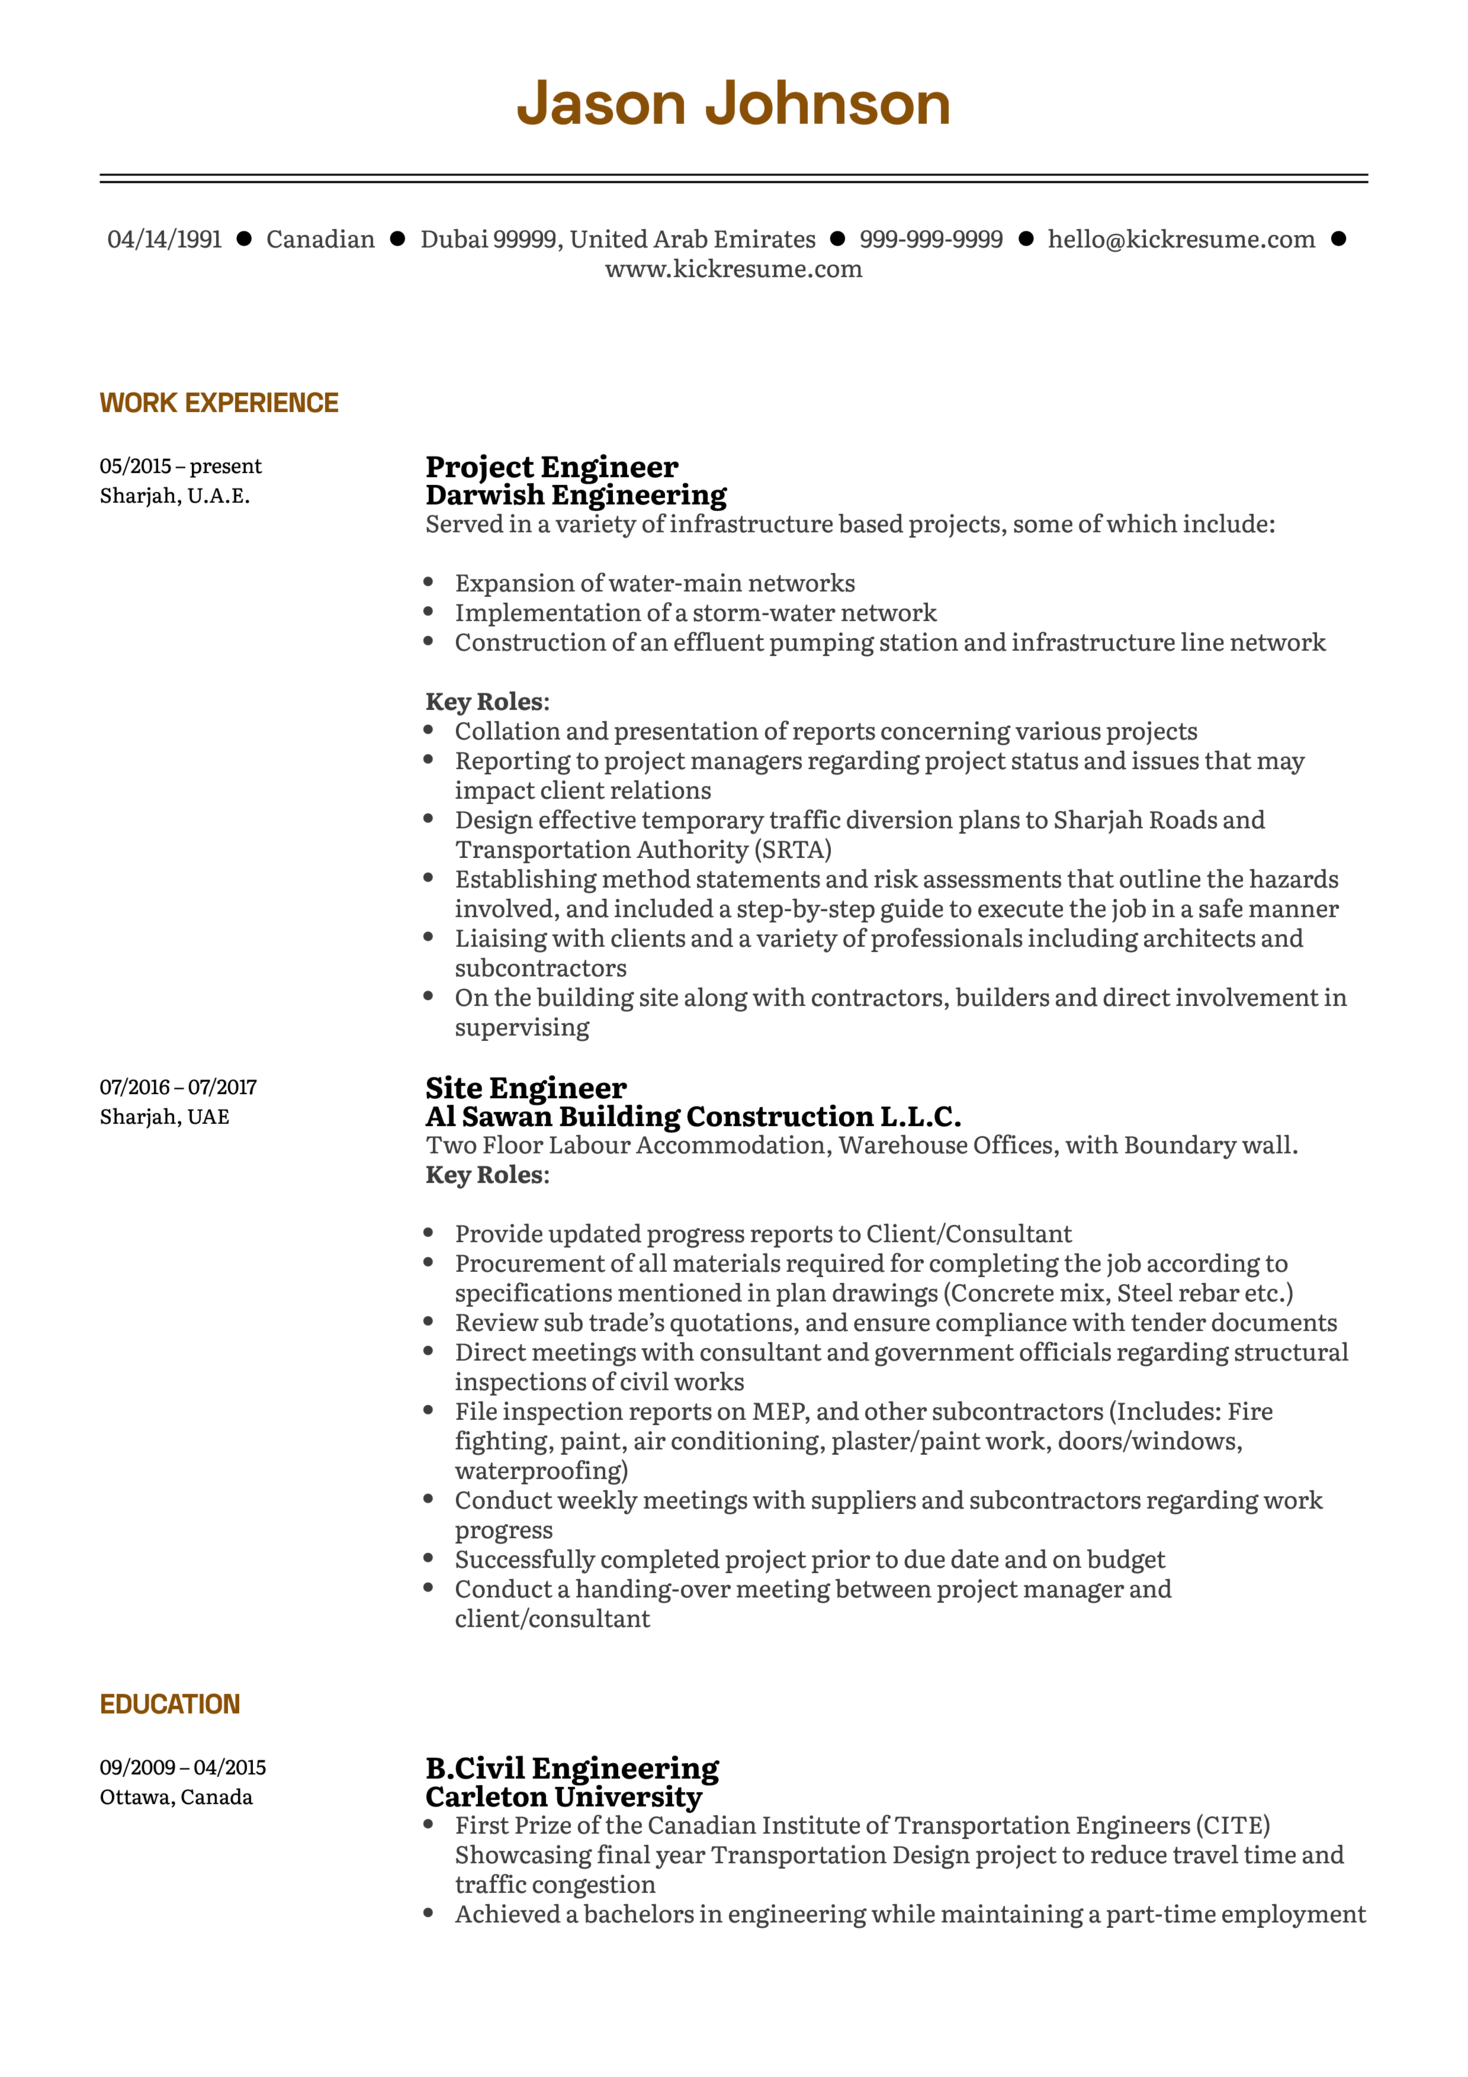 Project Engineer Resume Sample